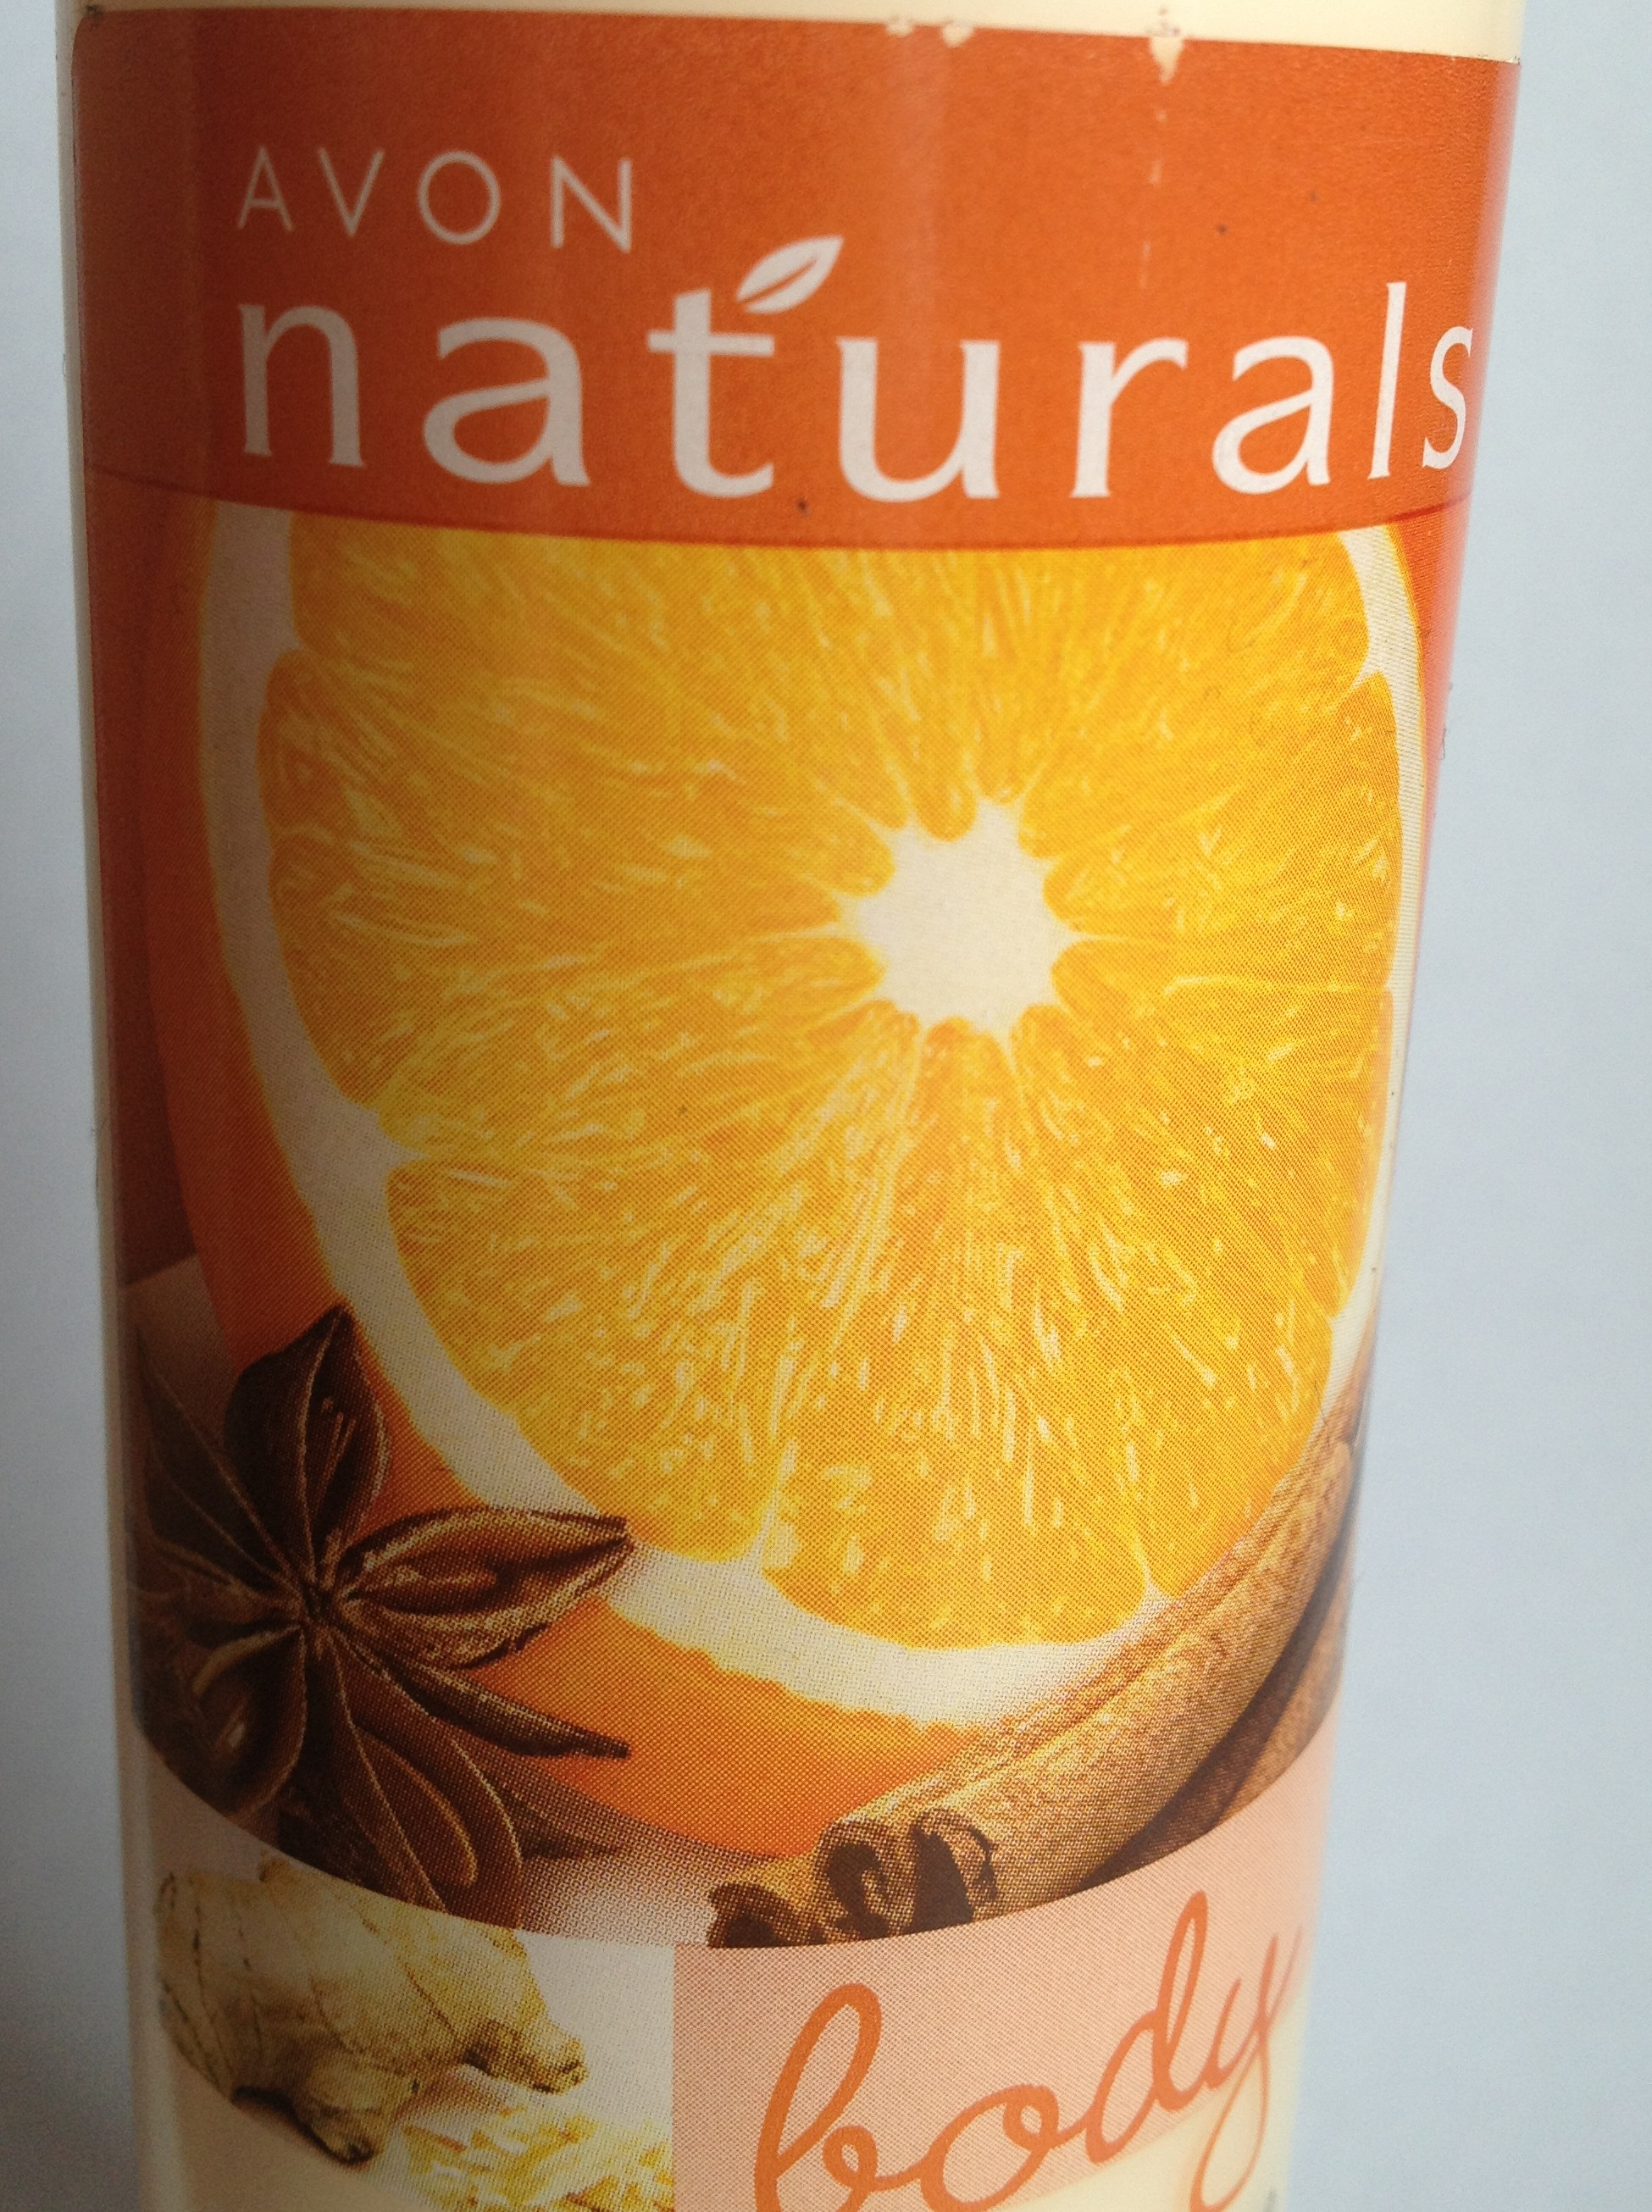 Avon naturals Spiced Orange and Ginger